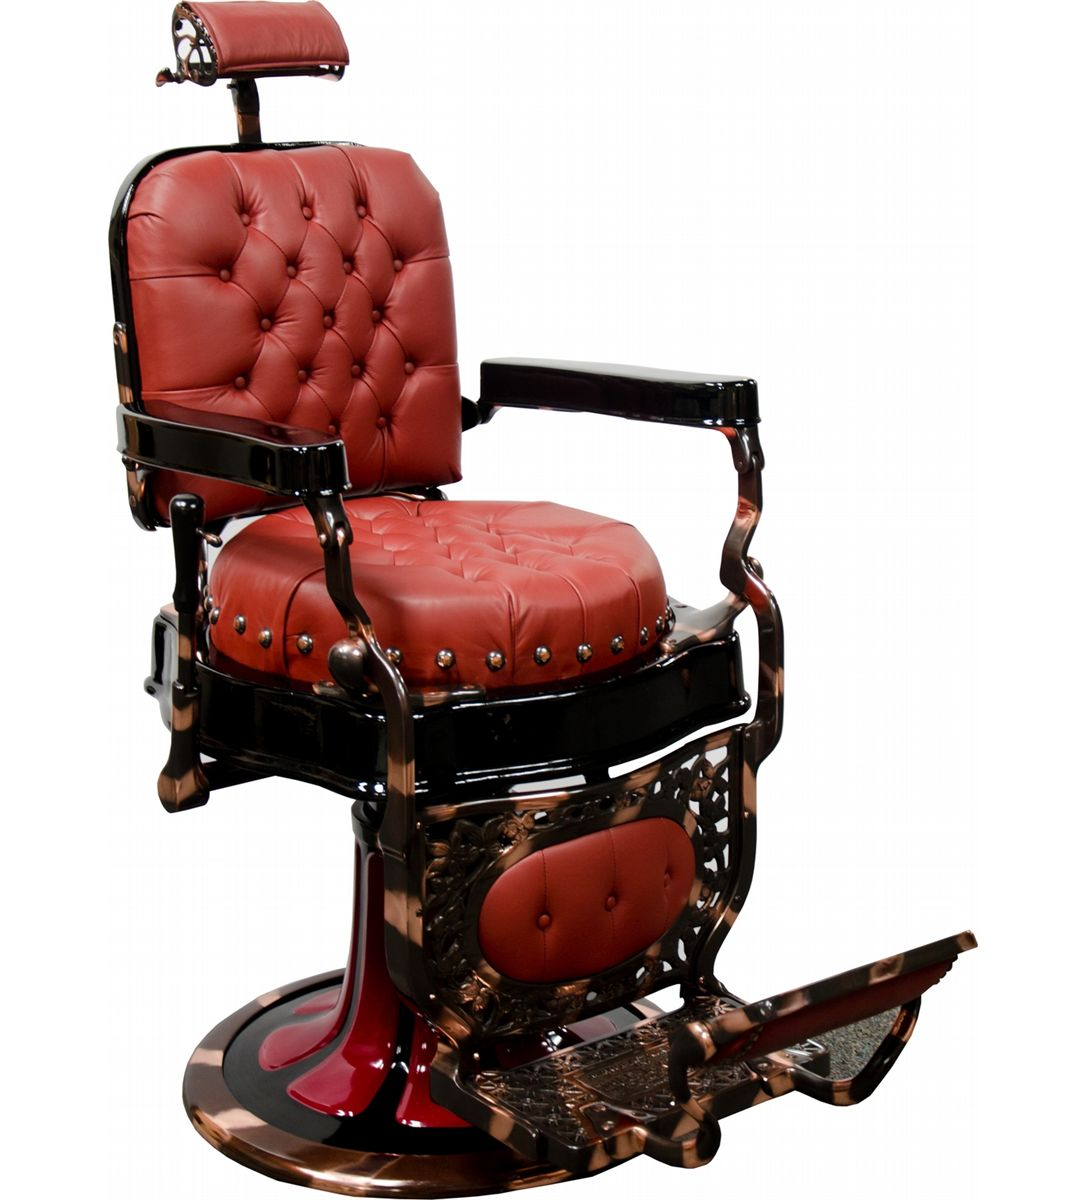 Old Barber Chairs >> Restored Koch Round Seat Barber Chair